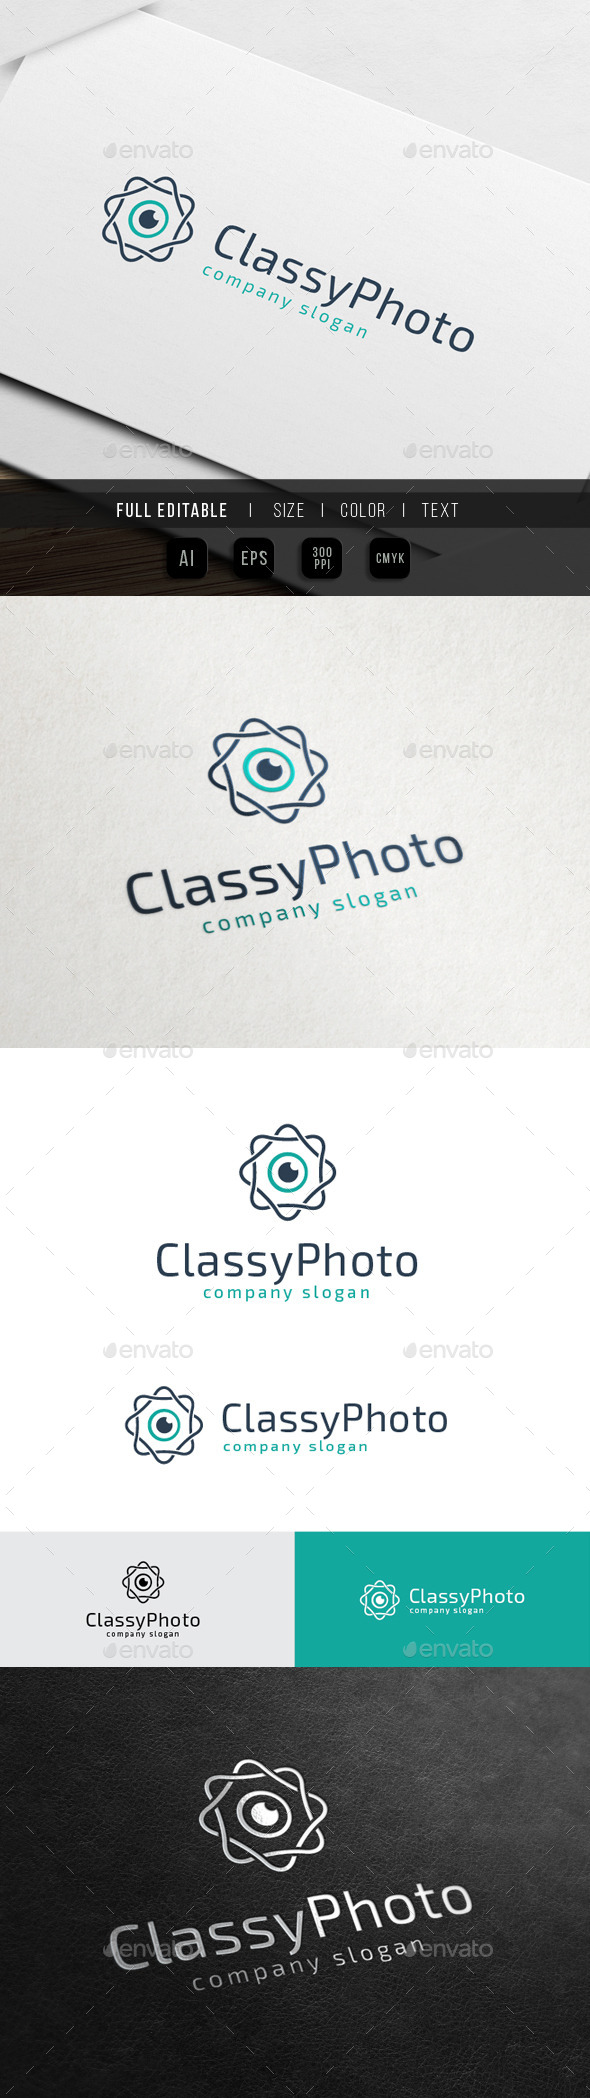 GraphicRiver Classy Photo Royal Vision 10484324